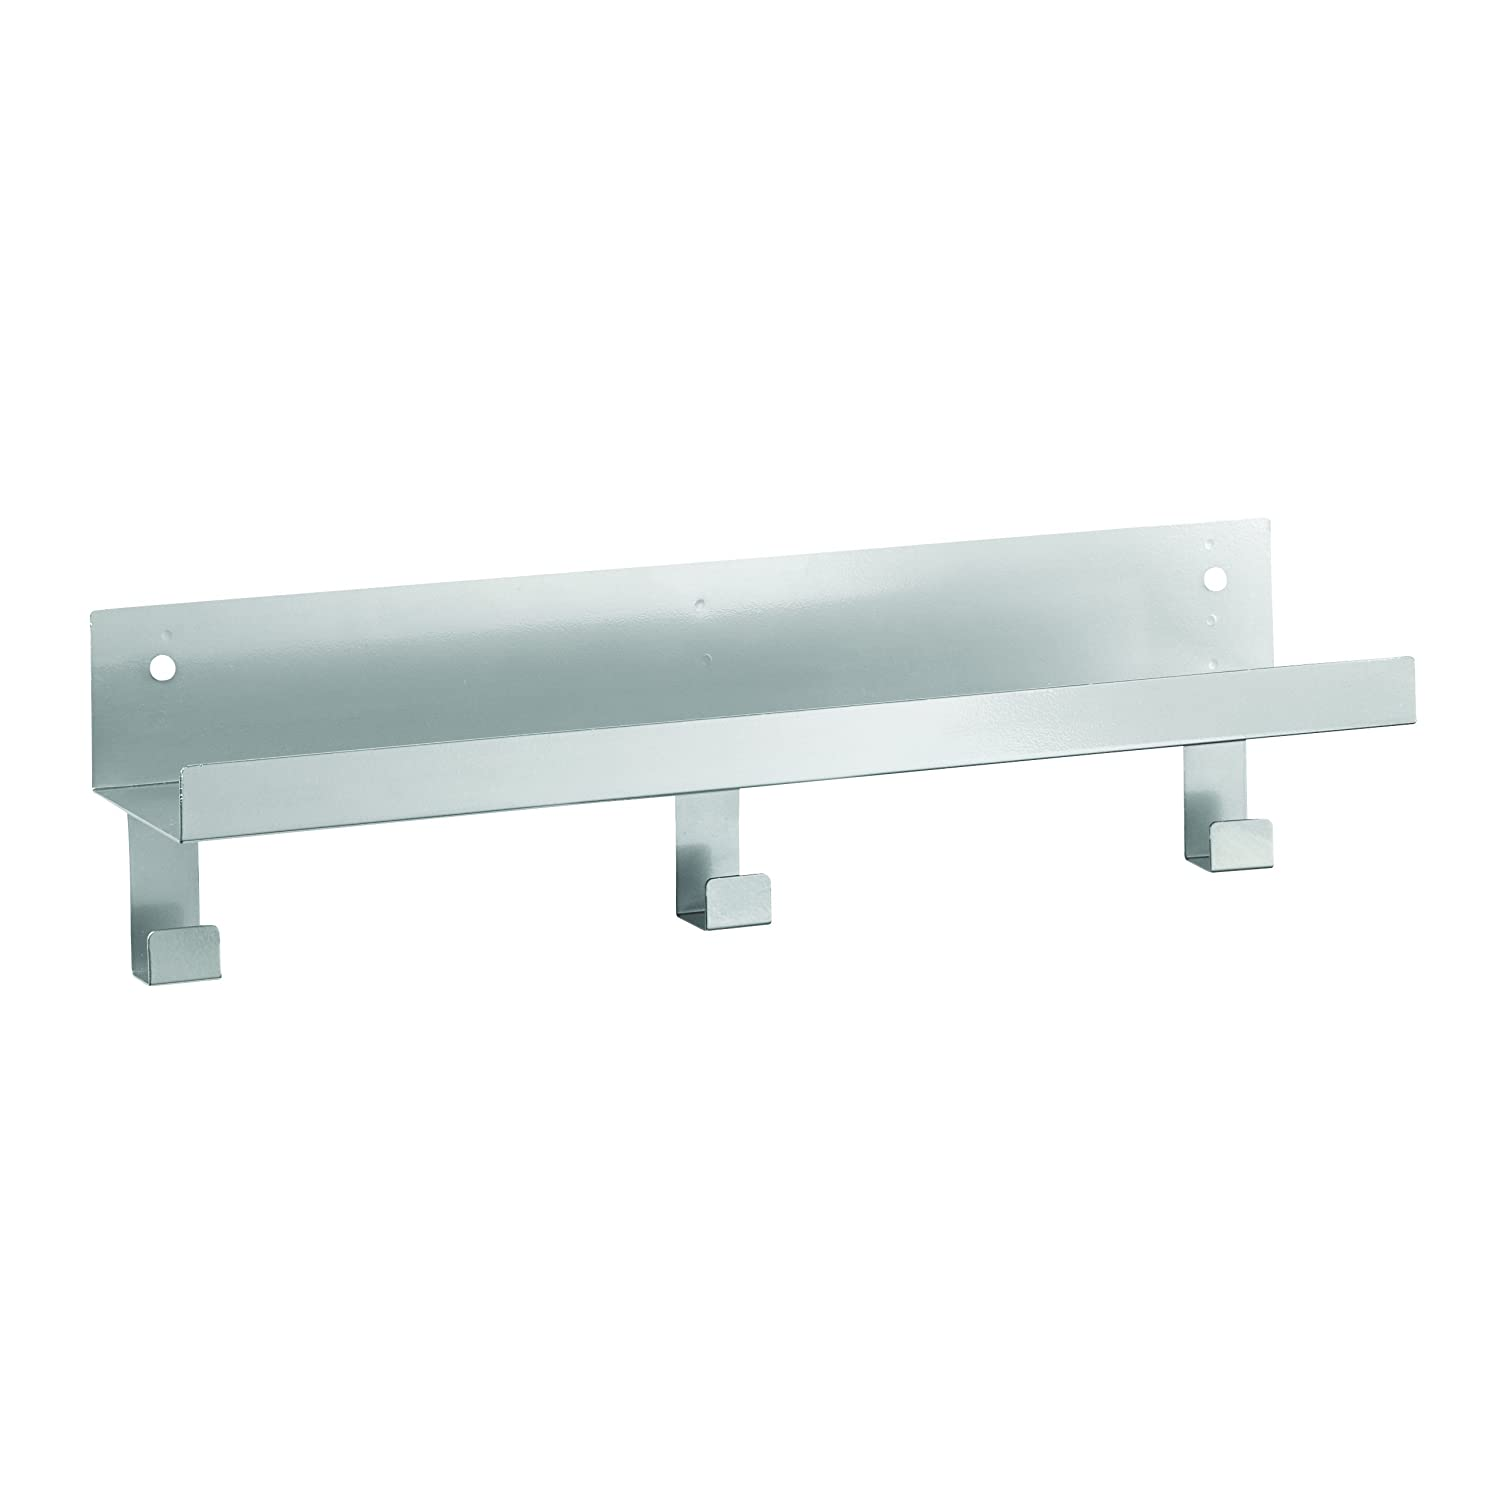 STEELMASTER Metal Display Shelf with Peg Hooks 5 x 18 x 4.5 Inches Silver 271118350